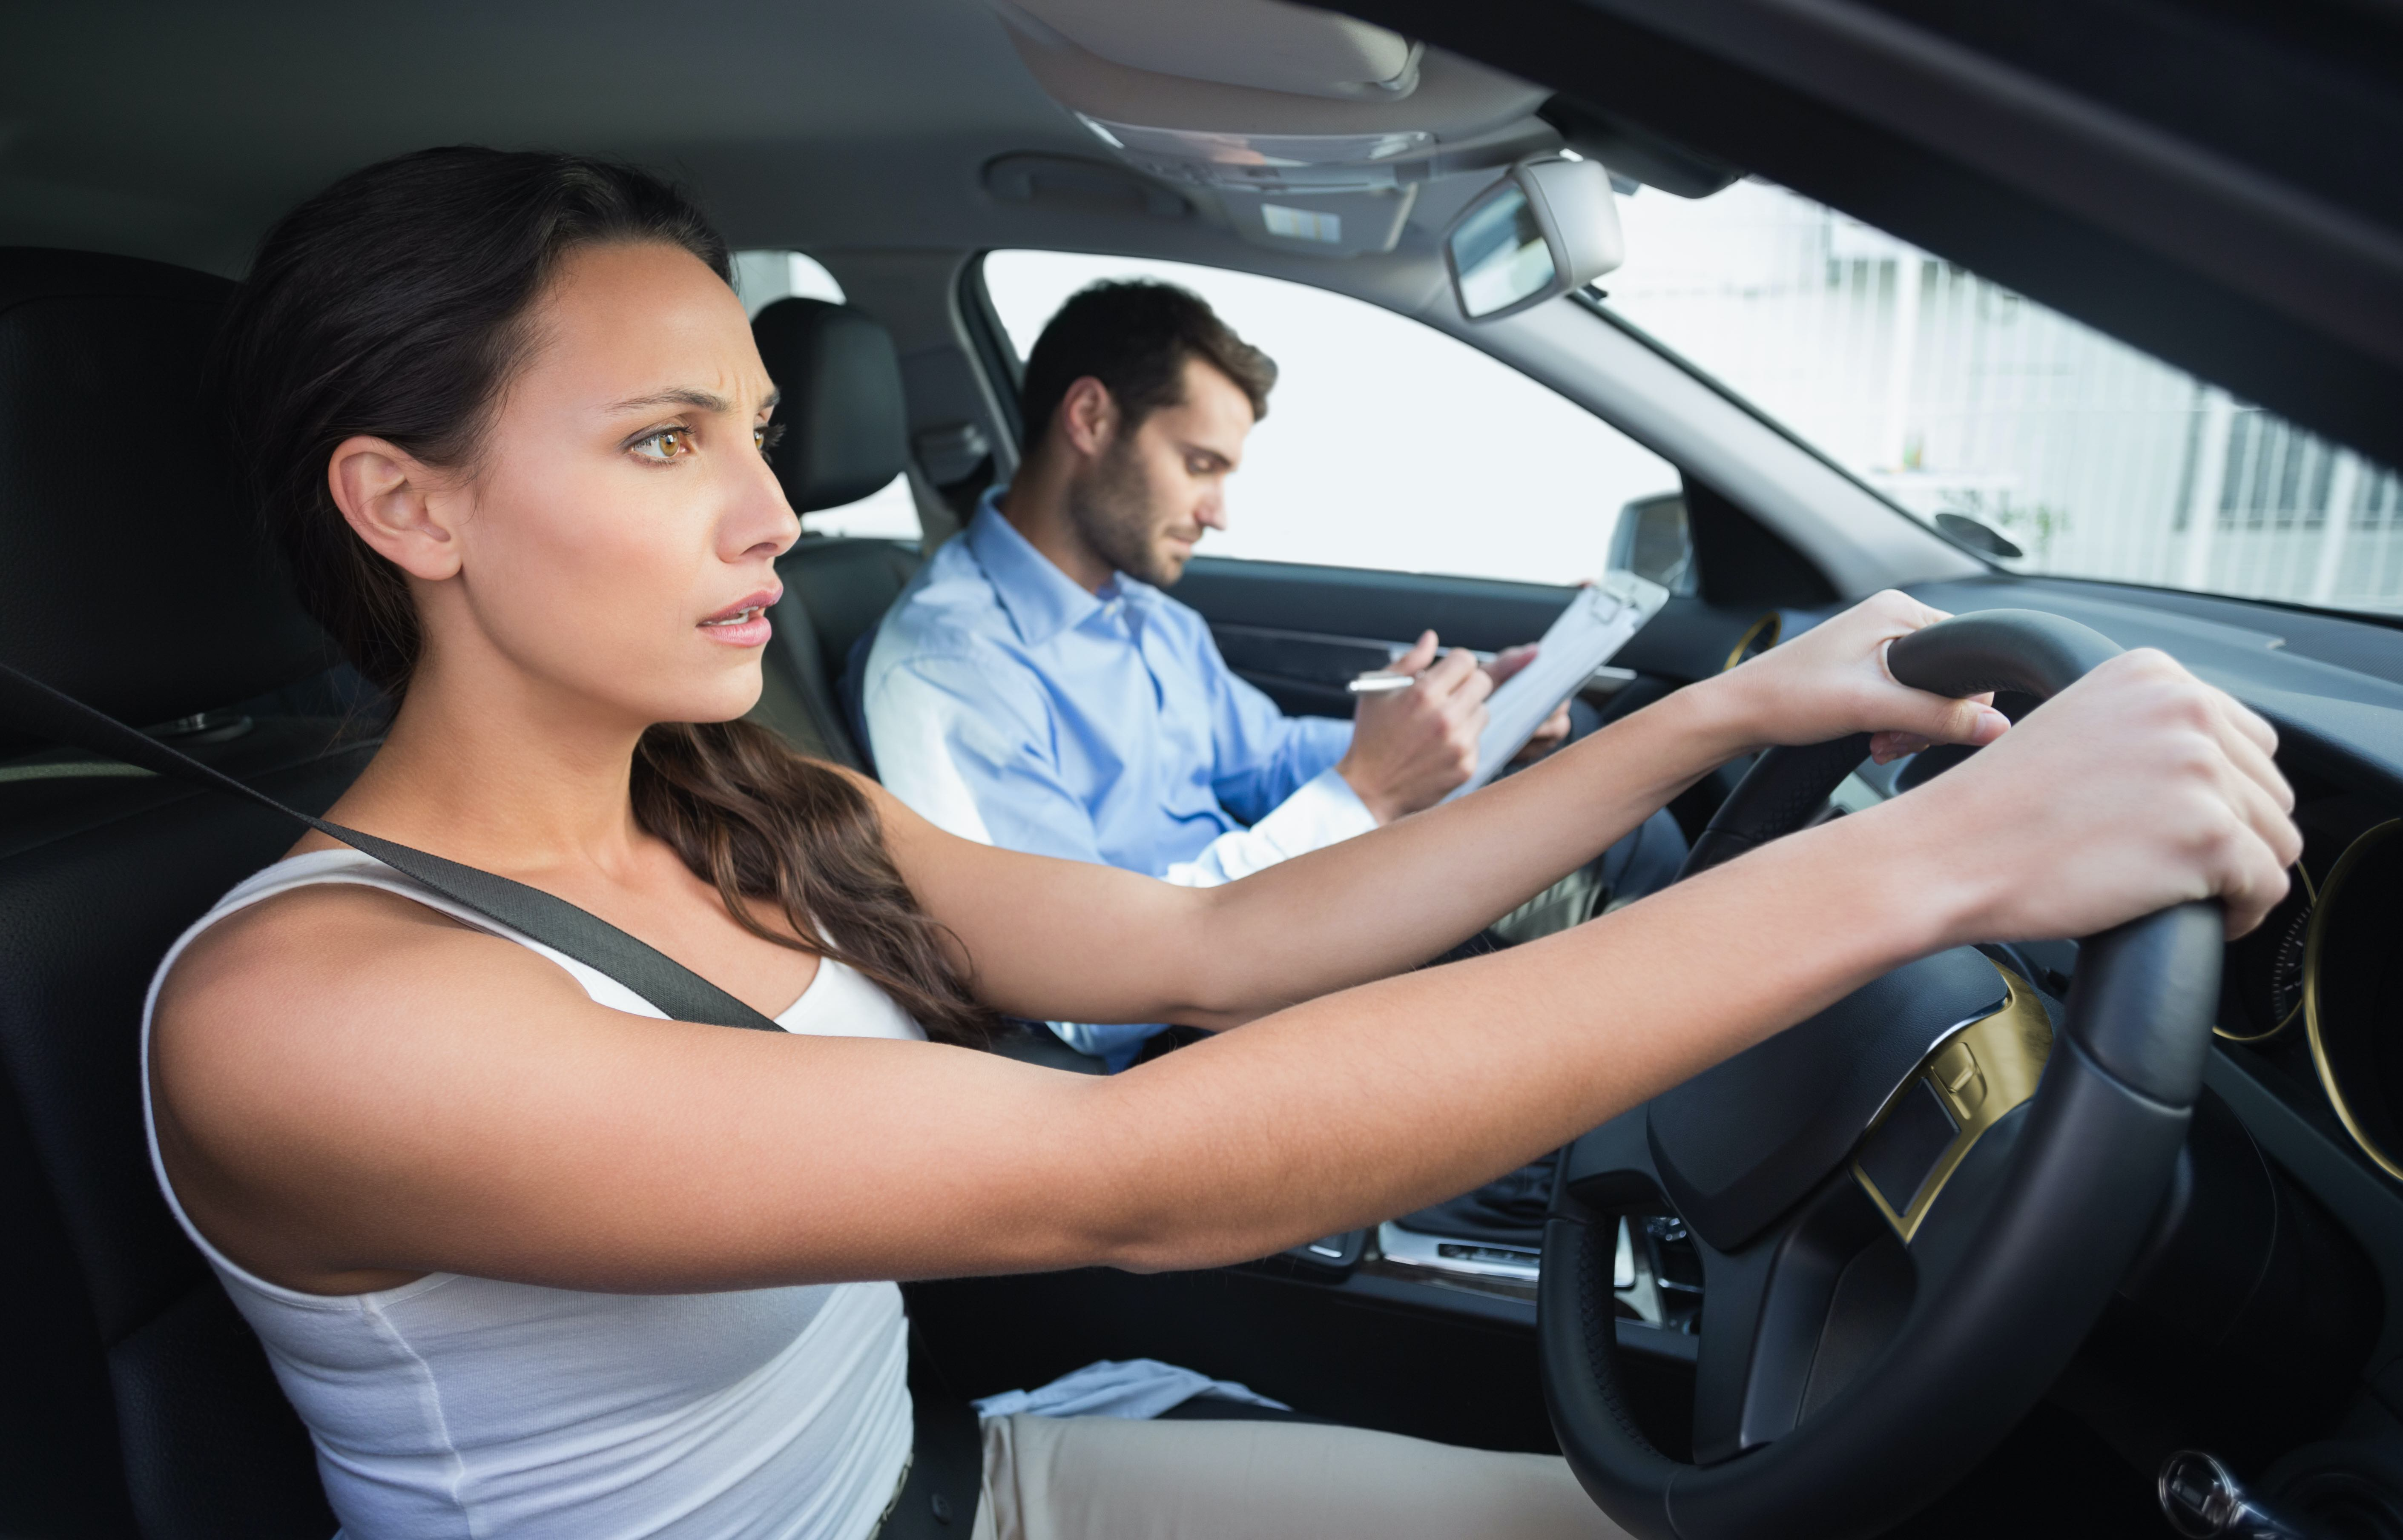 Learners, Be Ready, Says Driving Test Agency as It Hunts for More Driving Examiners